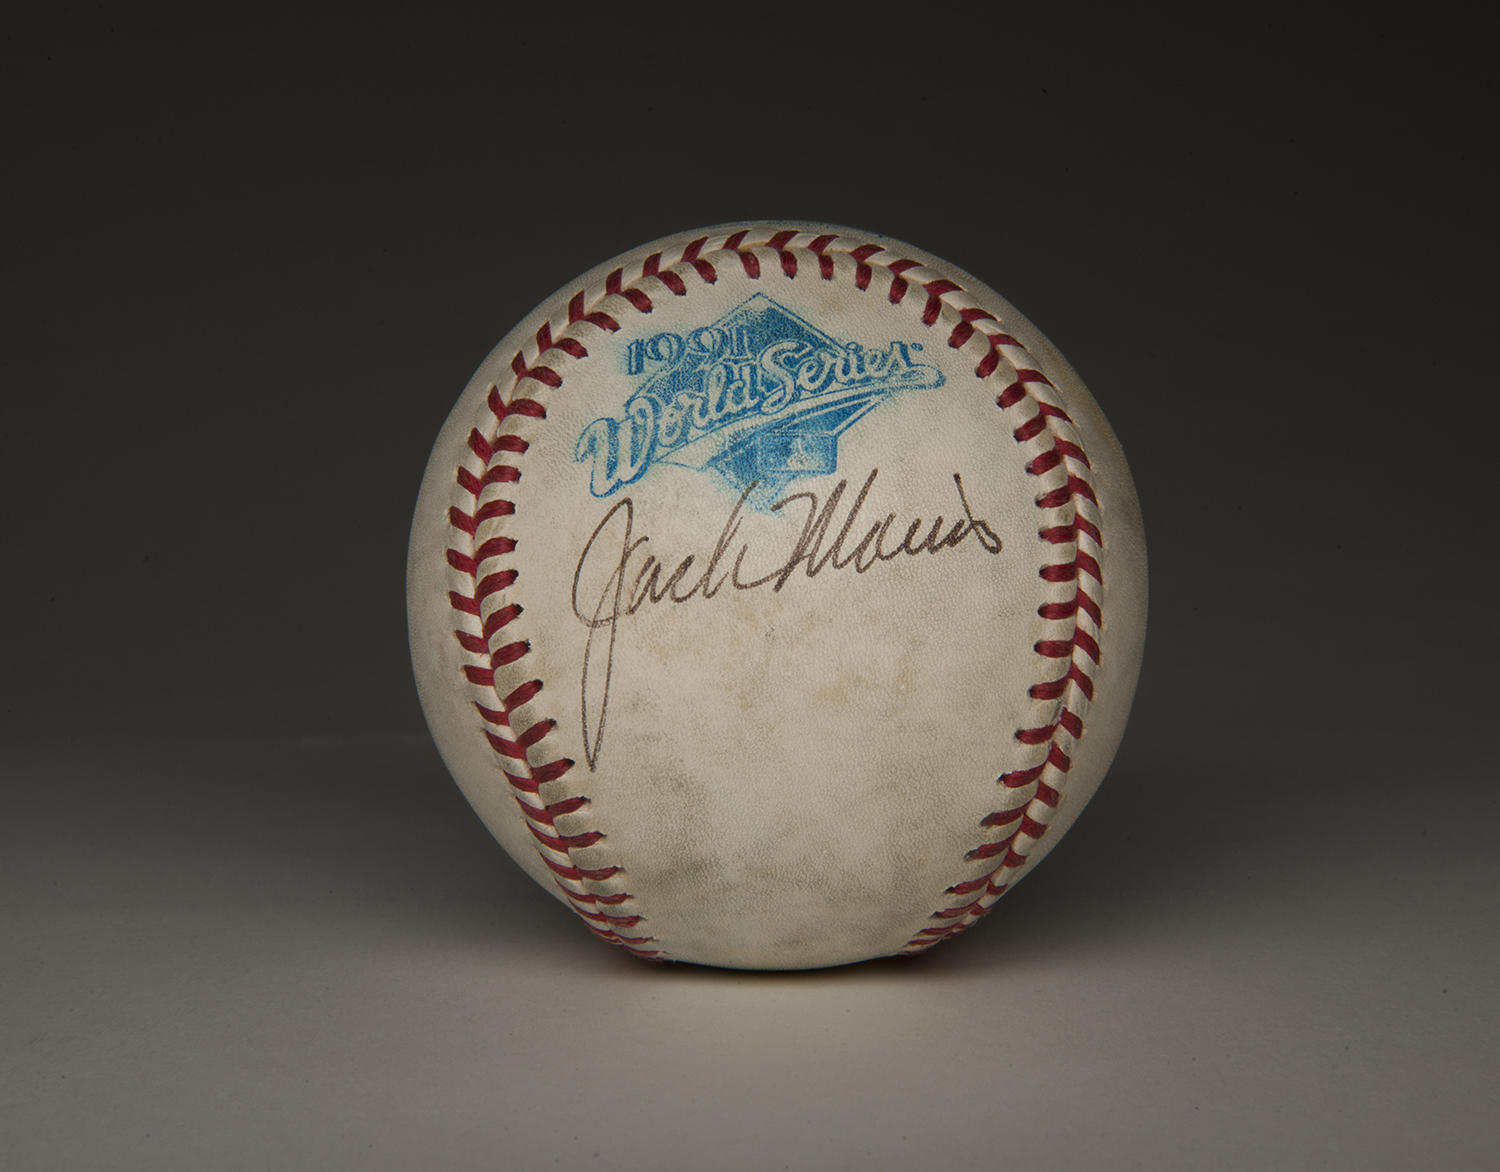 """Jack Morris pitched 10 shutout innings in Game 7 of the 1991 World Series. He signed this game-used baseball following the victory that gave the Twins the championship. <a href=""""http://collection.baseballhall.org/islandora/object/islandora%3A262563"""">PASTIME</a>  (Milo Stewart Jr. / National Baseball Hall of Fame)"""